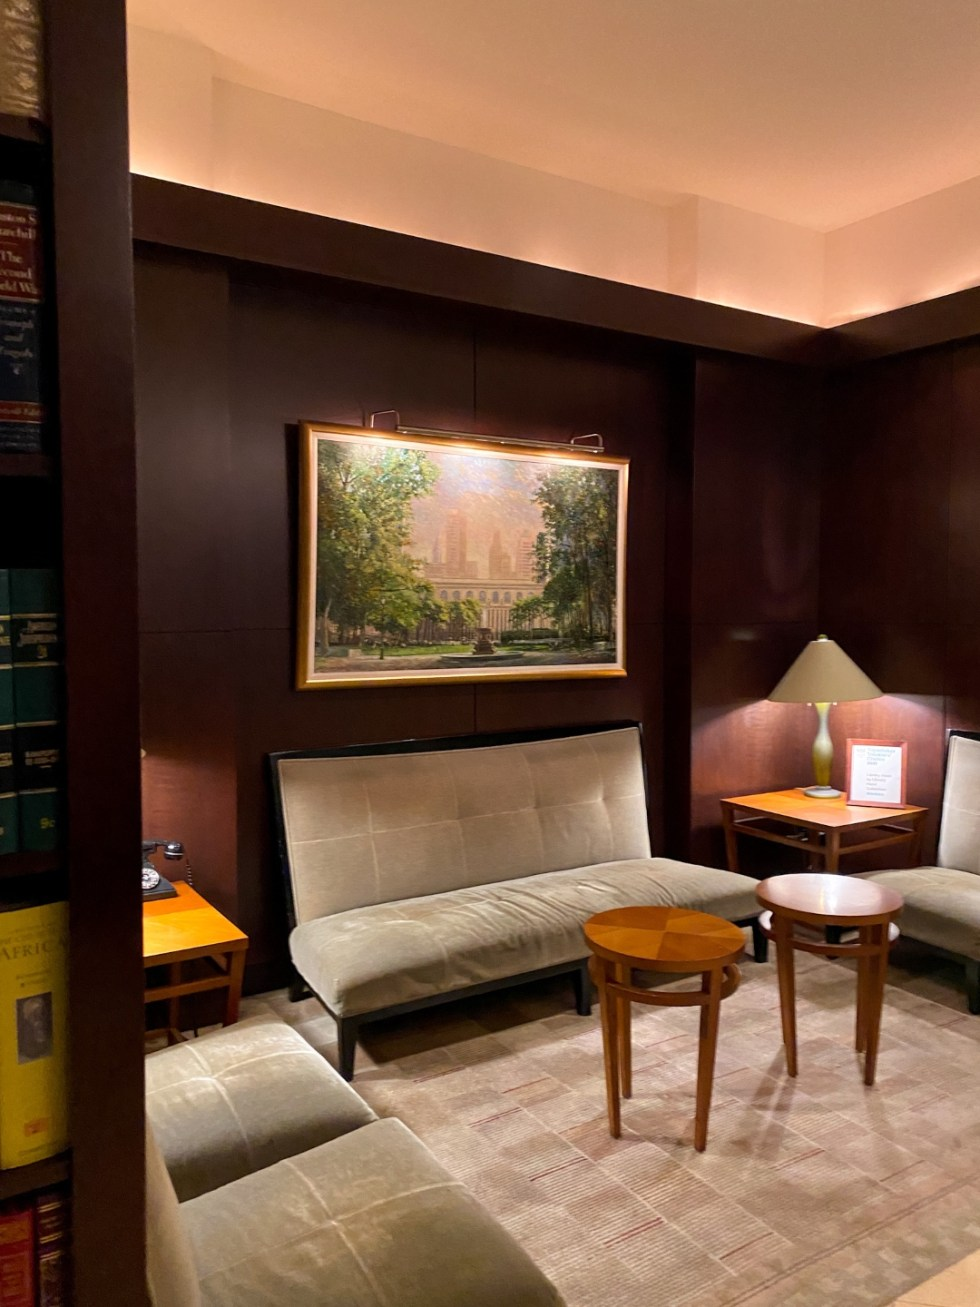 NYC Summer Weekend: Things to Do in NYC in the Summer - I'm Fixin' To - @imfixintoblog   NYC Summer Weekend by popular NC travel blog, I'm Fixin' To: image of a lounge area with grey velvet seating and round coffee tables.